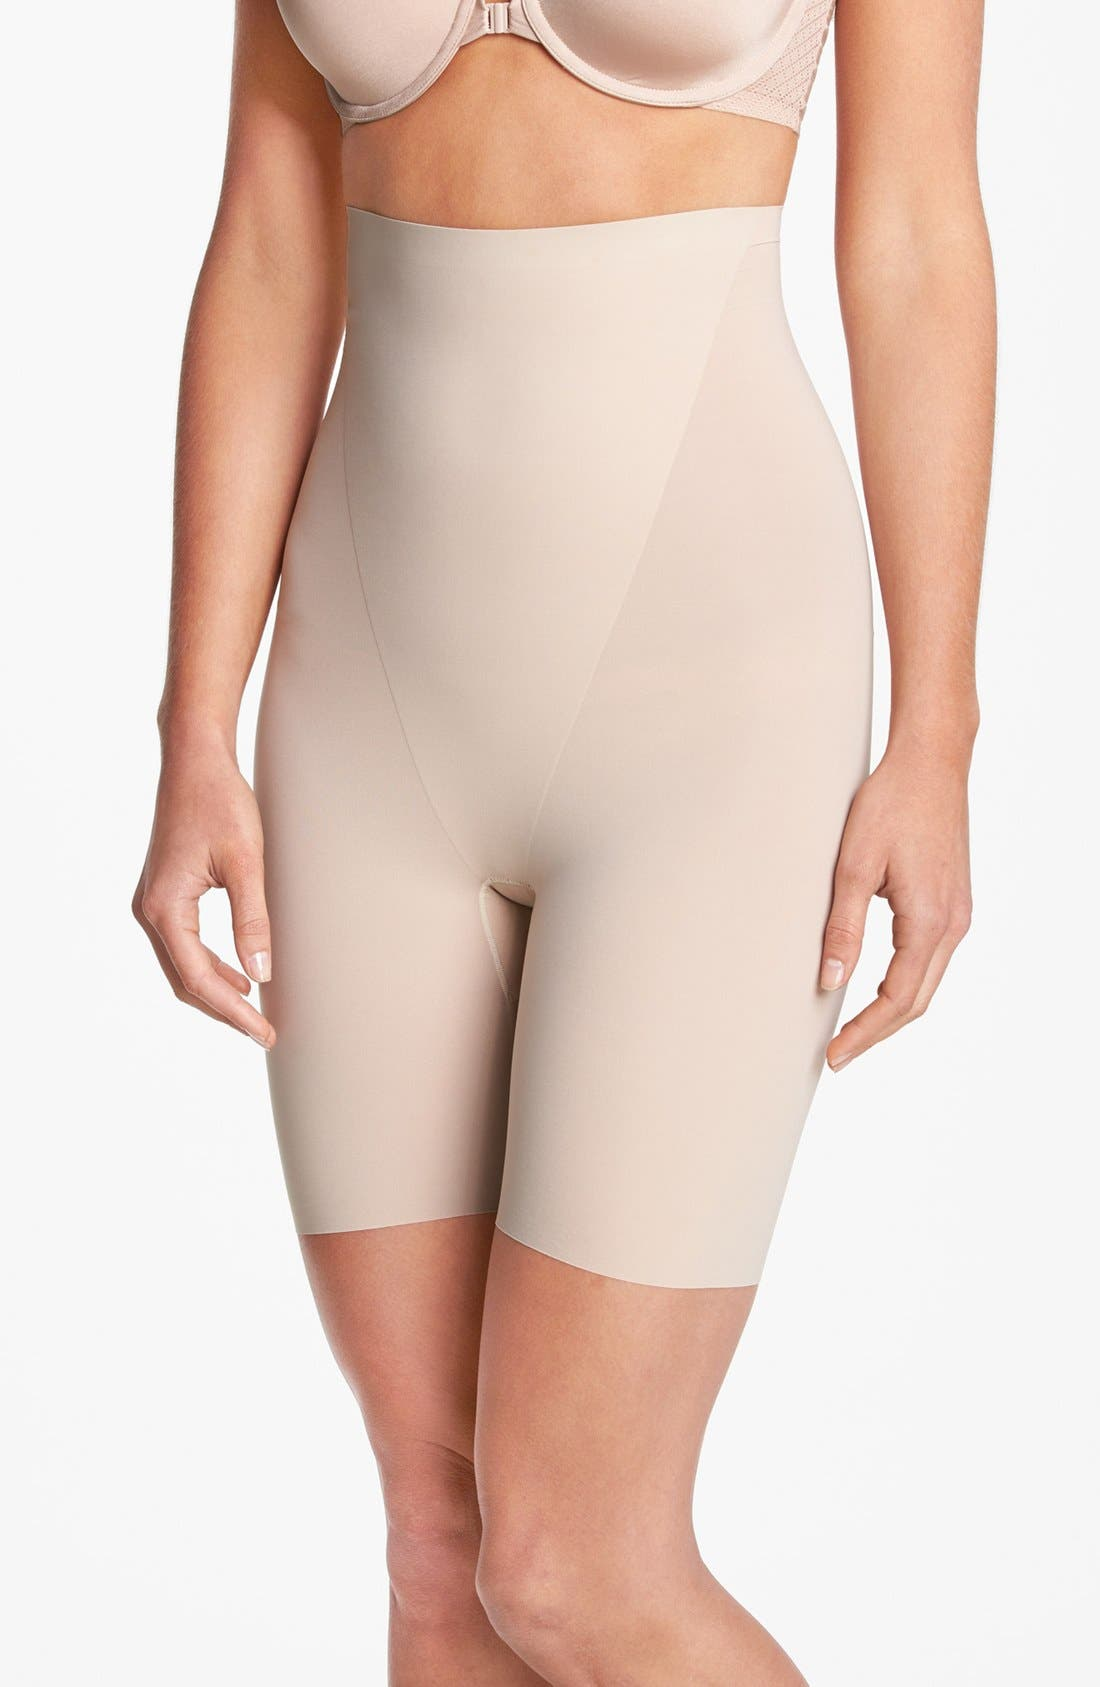 Alternate Image 1 Selected - SPANX® 'Trust Your Thinstincts' High Waist Shaper